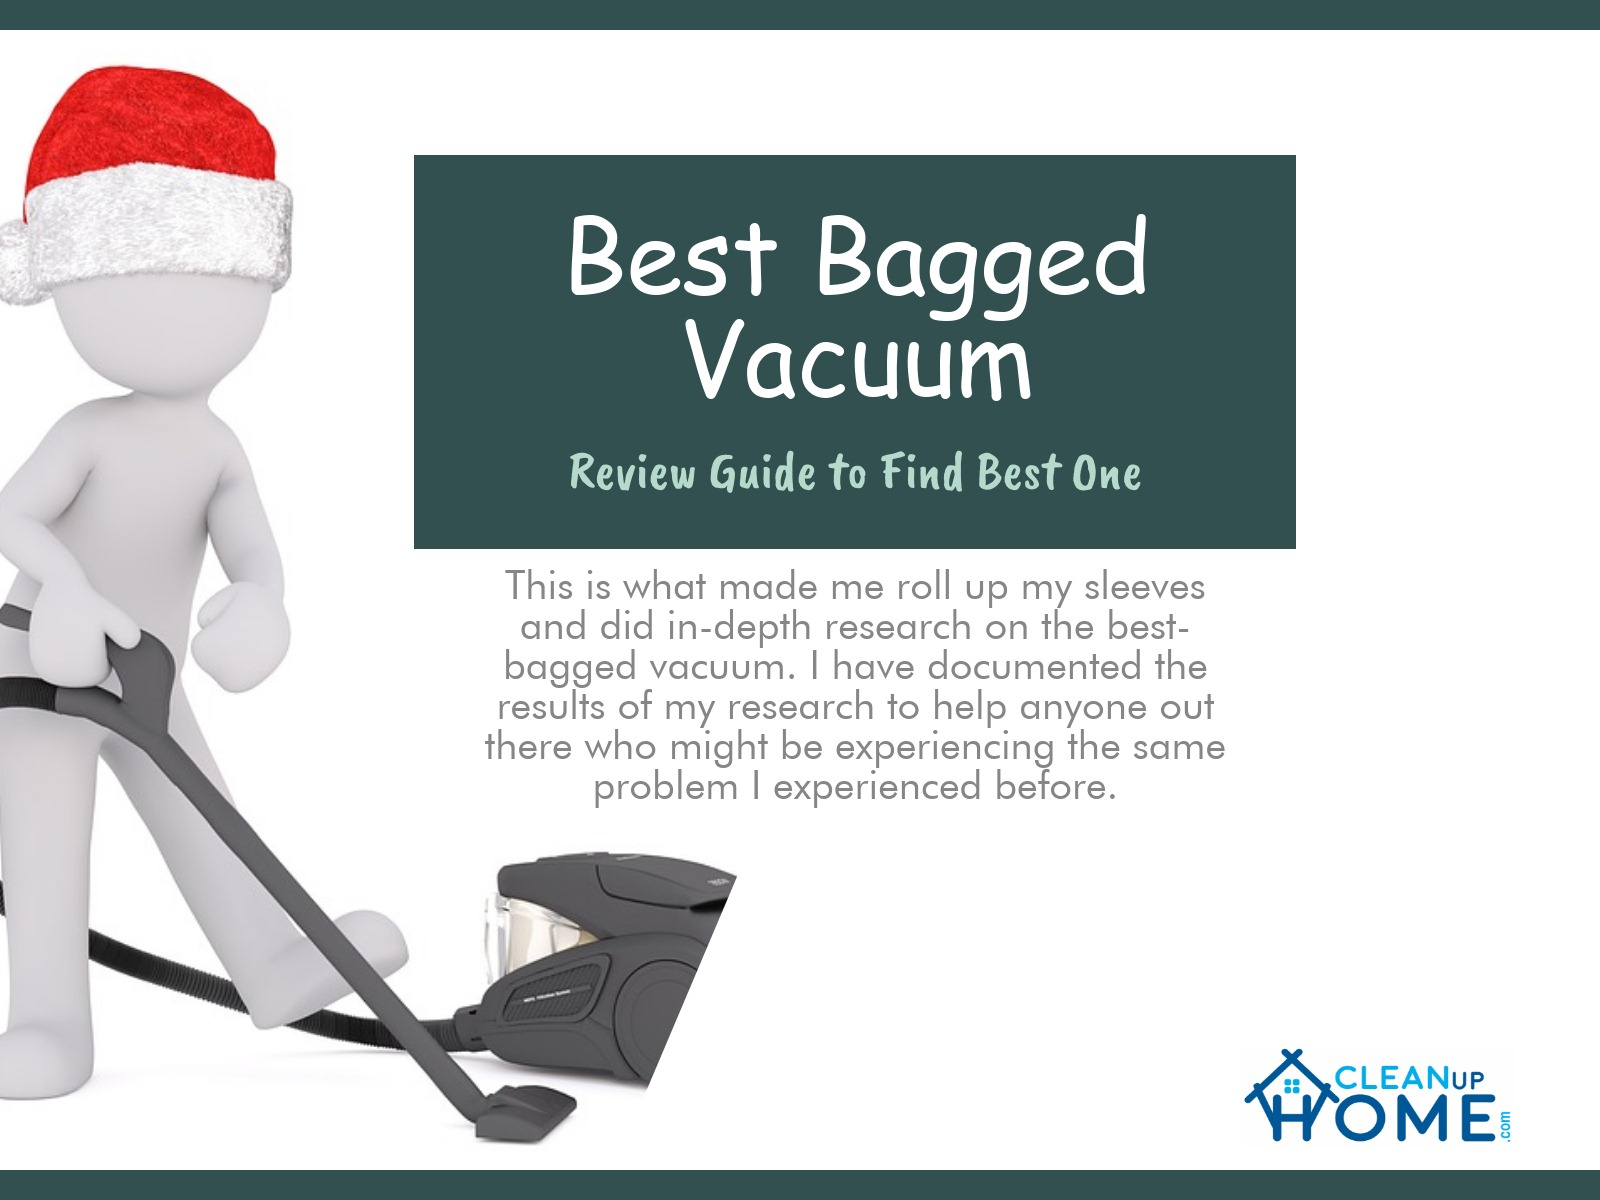 Best Bagged Vacuum